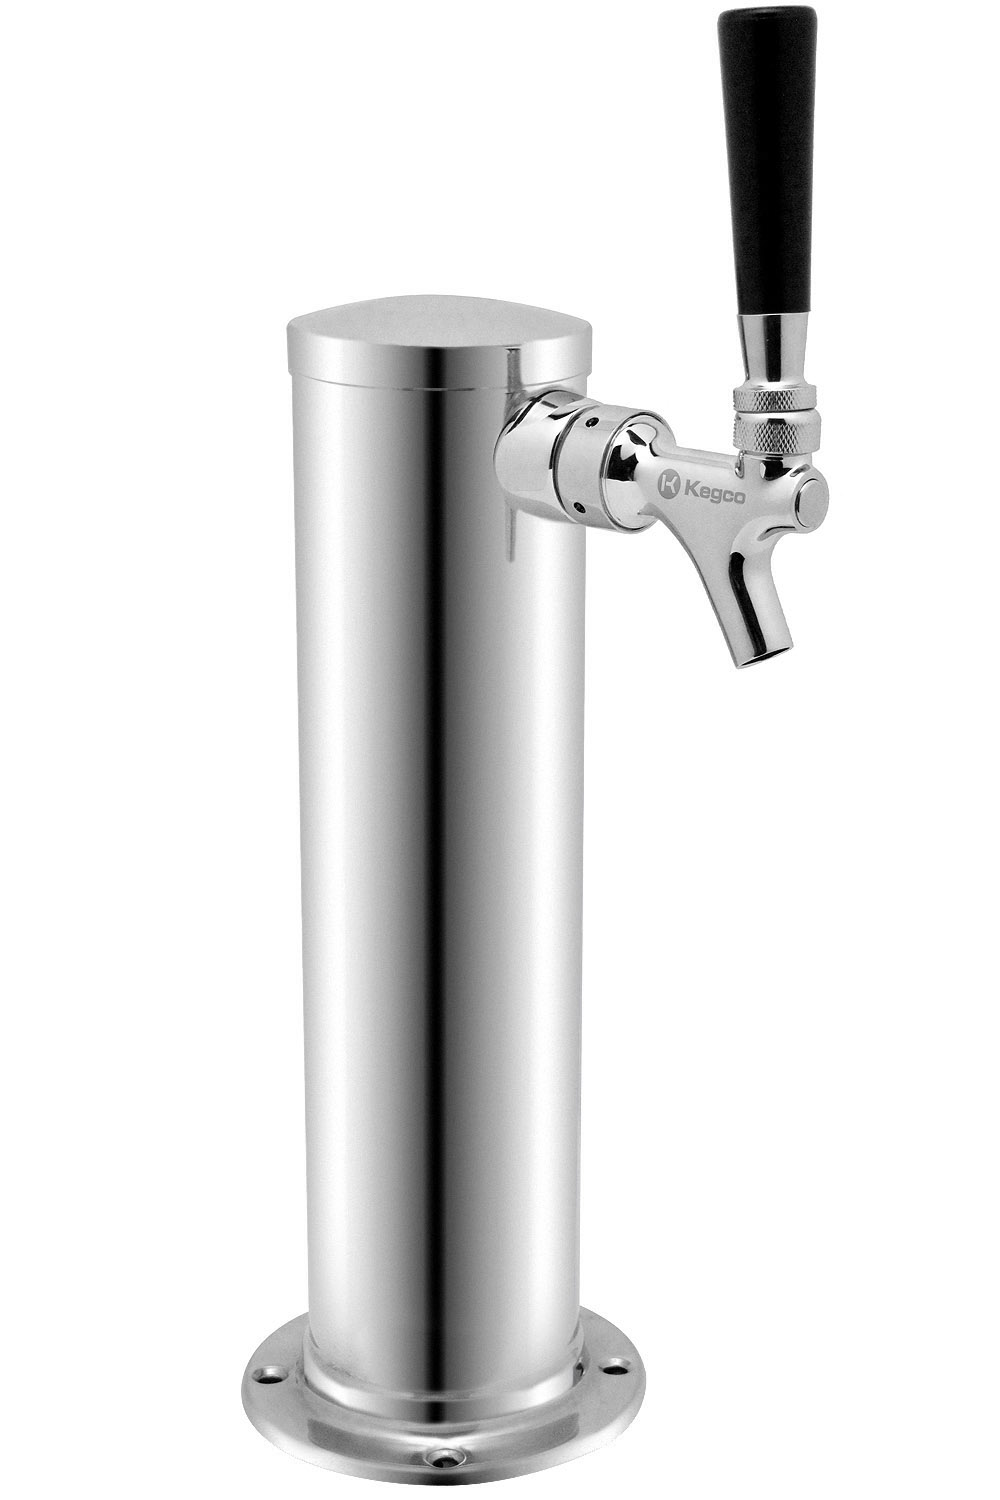 Kegco D4743T-SS Polished Stainless Steel Tap Beer Tower ...